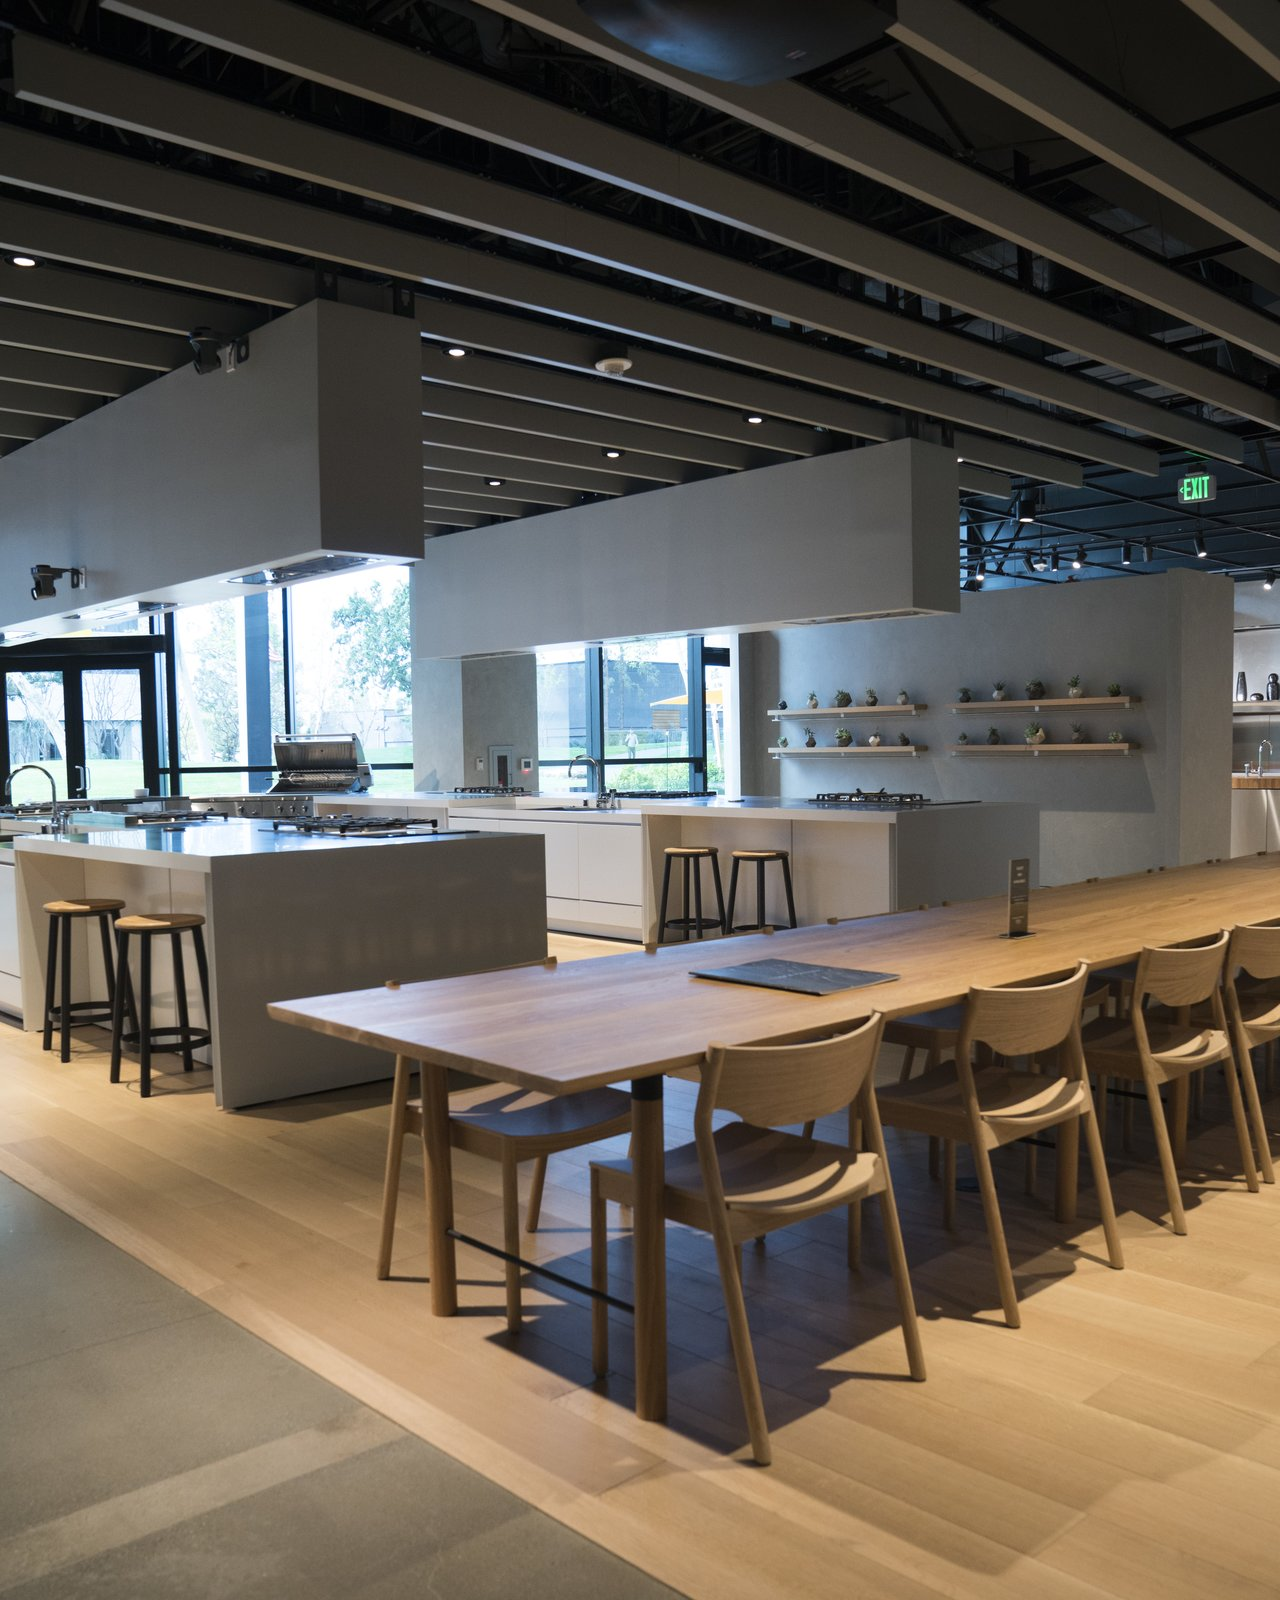 The space is designed to create human experiences. The Social Kitchen is where visitors can relax and truly feel at home, while enjoying a meal with the showroom team over thoughtful conversation.